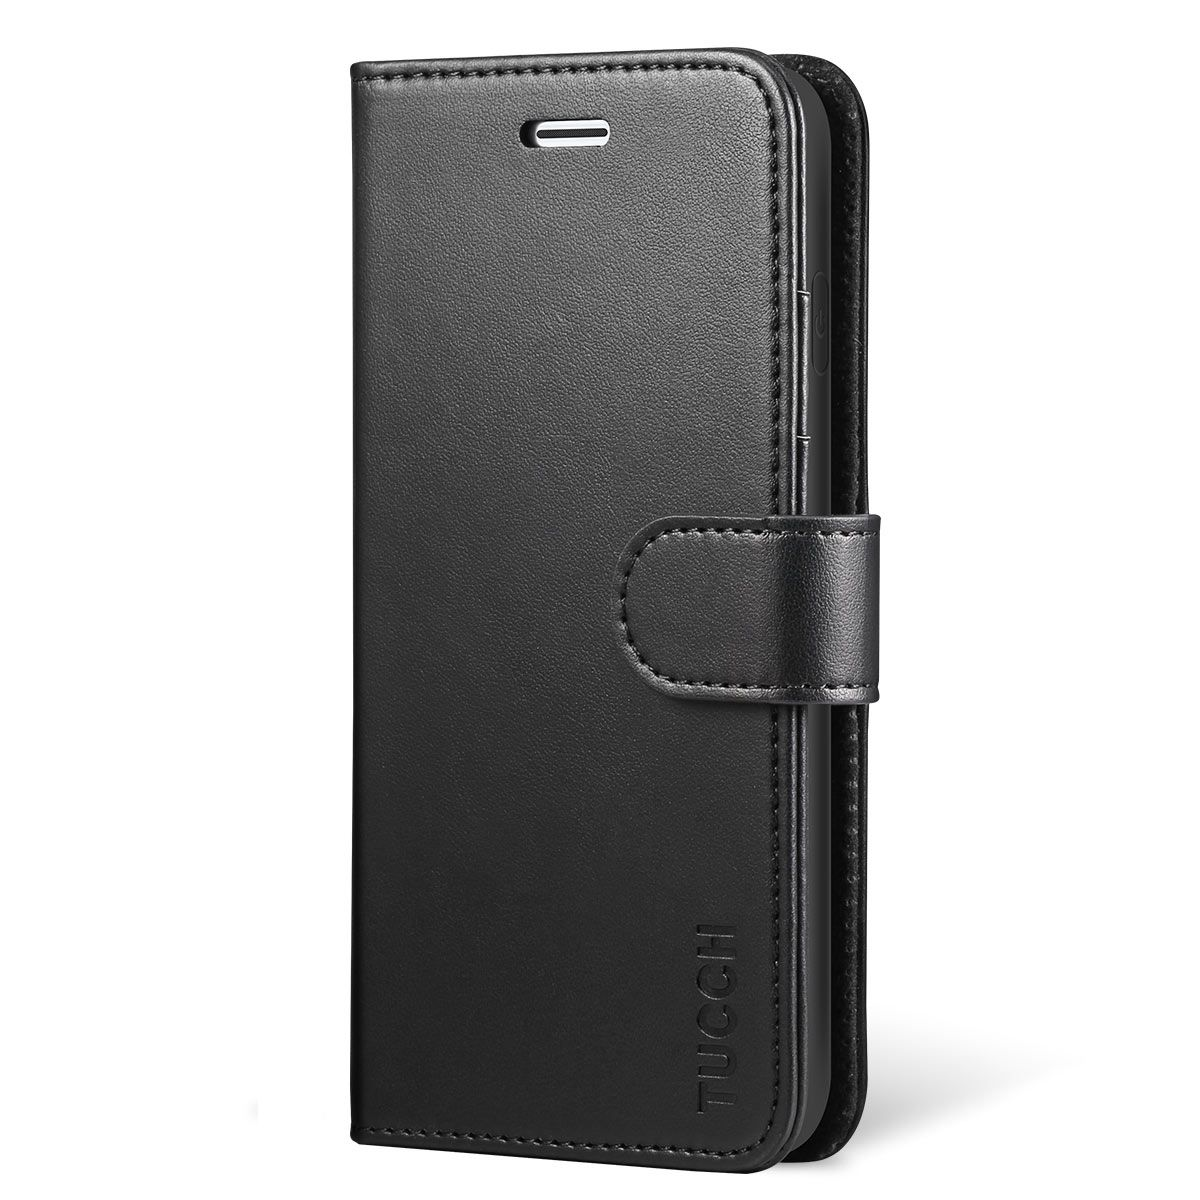 sale retailer 322f4 738a4 TUCCH iPhone X Wallet Case - iPhone 10 Premium PU Leather Flip Folio Case  with Card Slot, Cash Clip, Stand Holder and Magnetic Closure, TPU  Shockproof ...